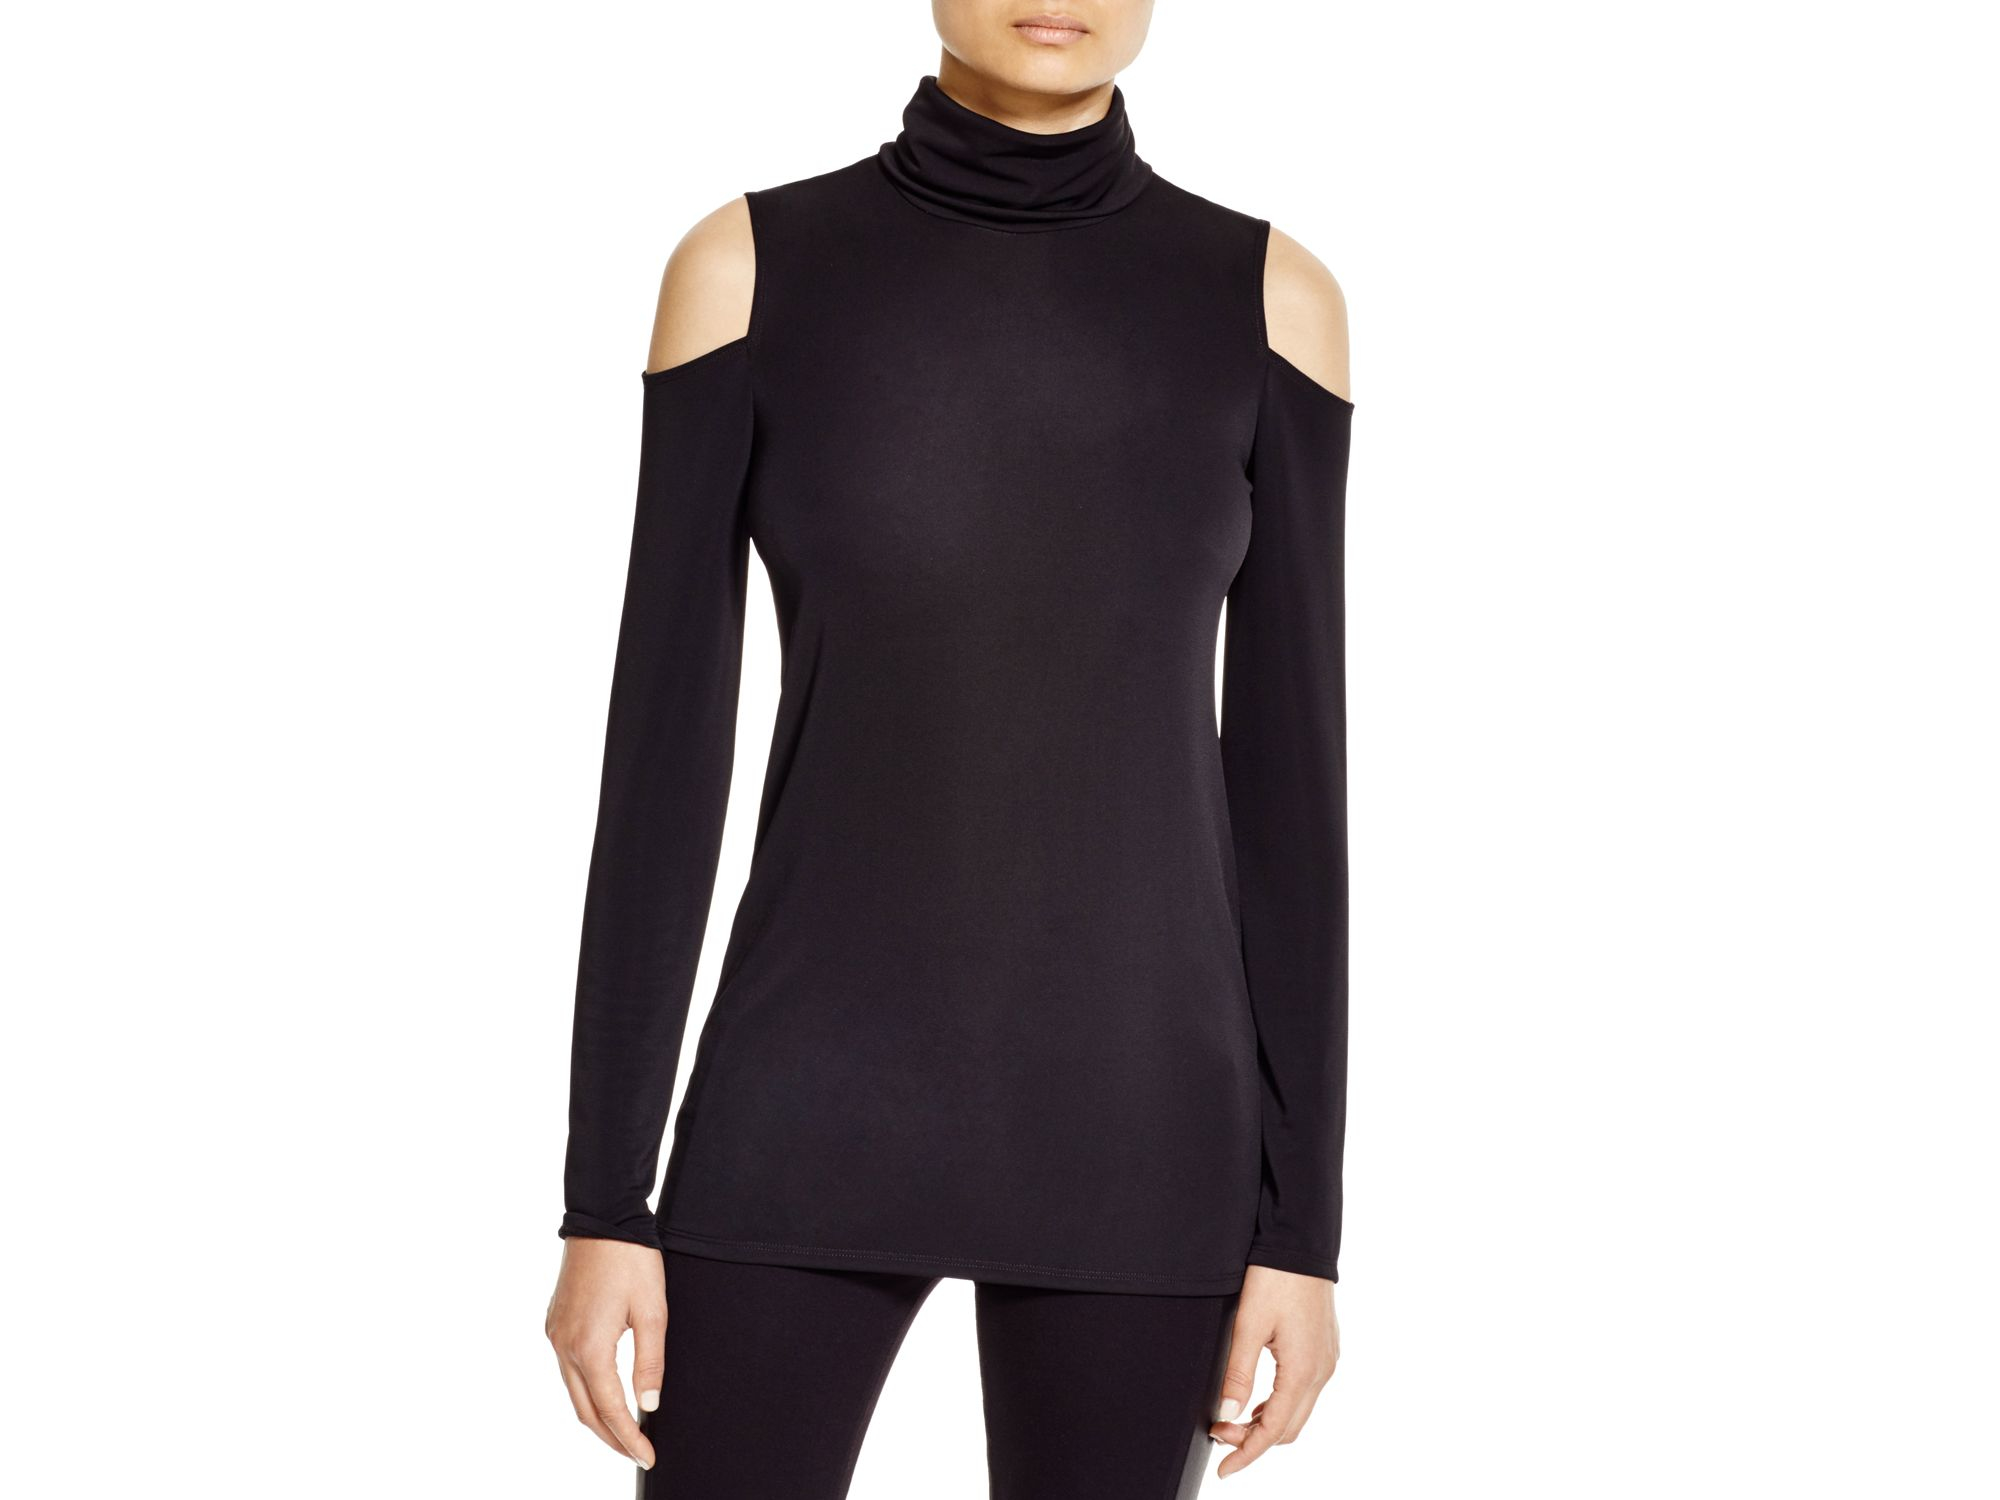 Dkny Turtleneck Cold Shoulder Shirt - Bloomingdale's Exclusive in ...